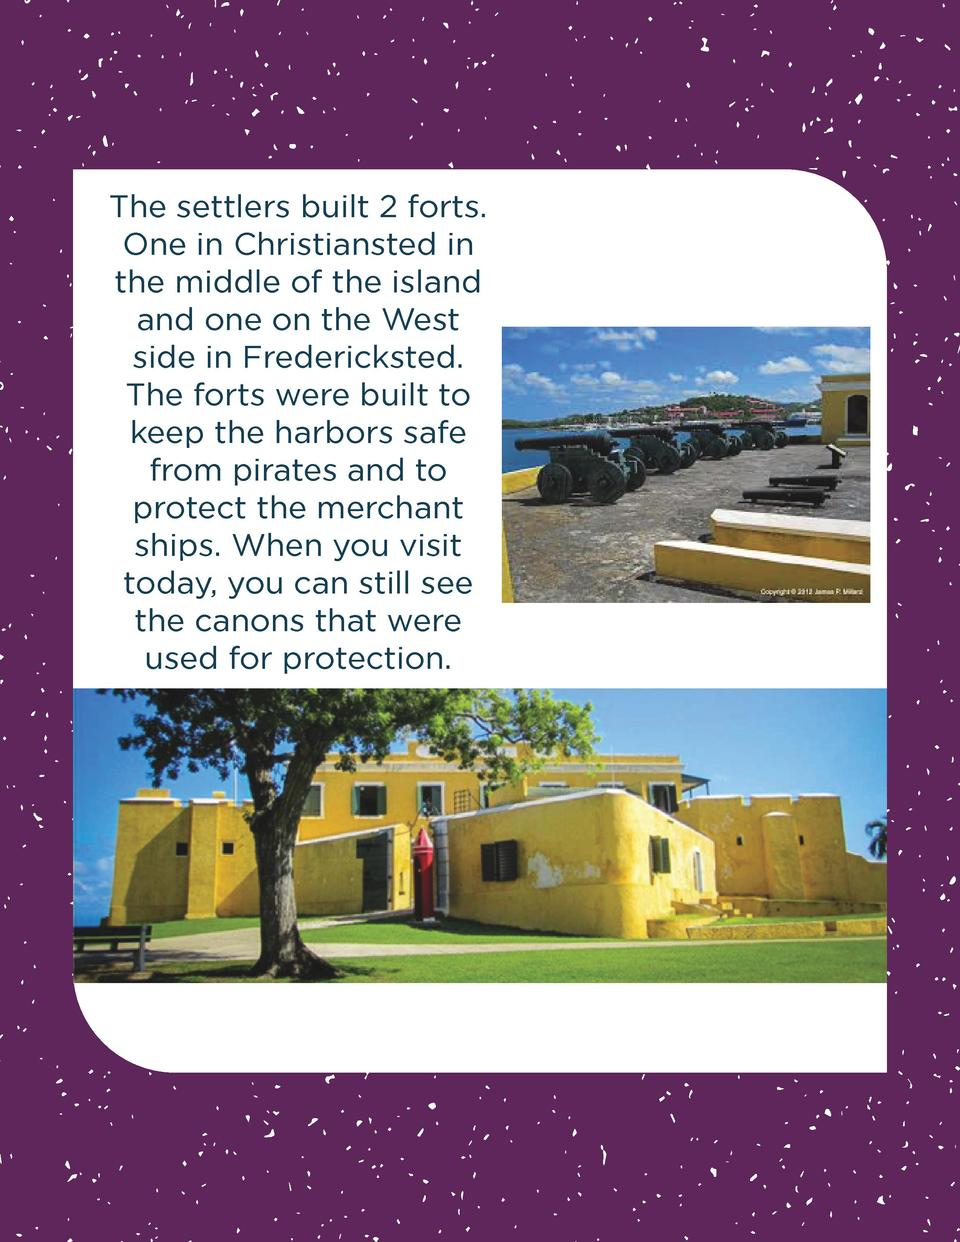 The settlers built 2 forts. One in Christiansted in the middle of the island and one on the West side in Fredericksted. Th...